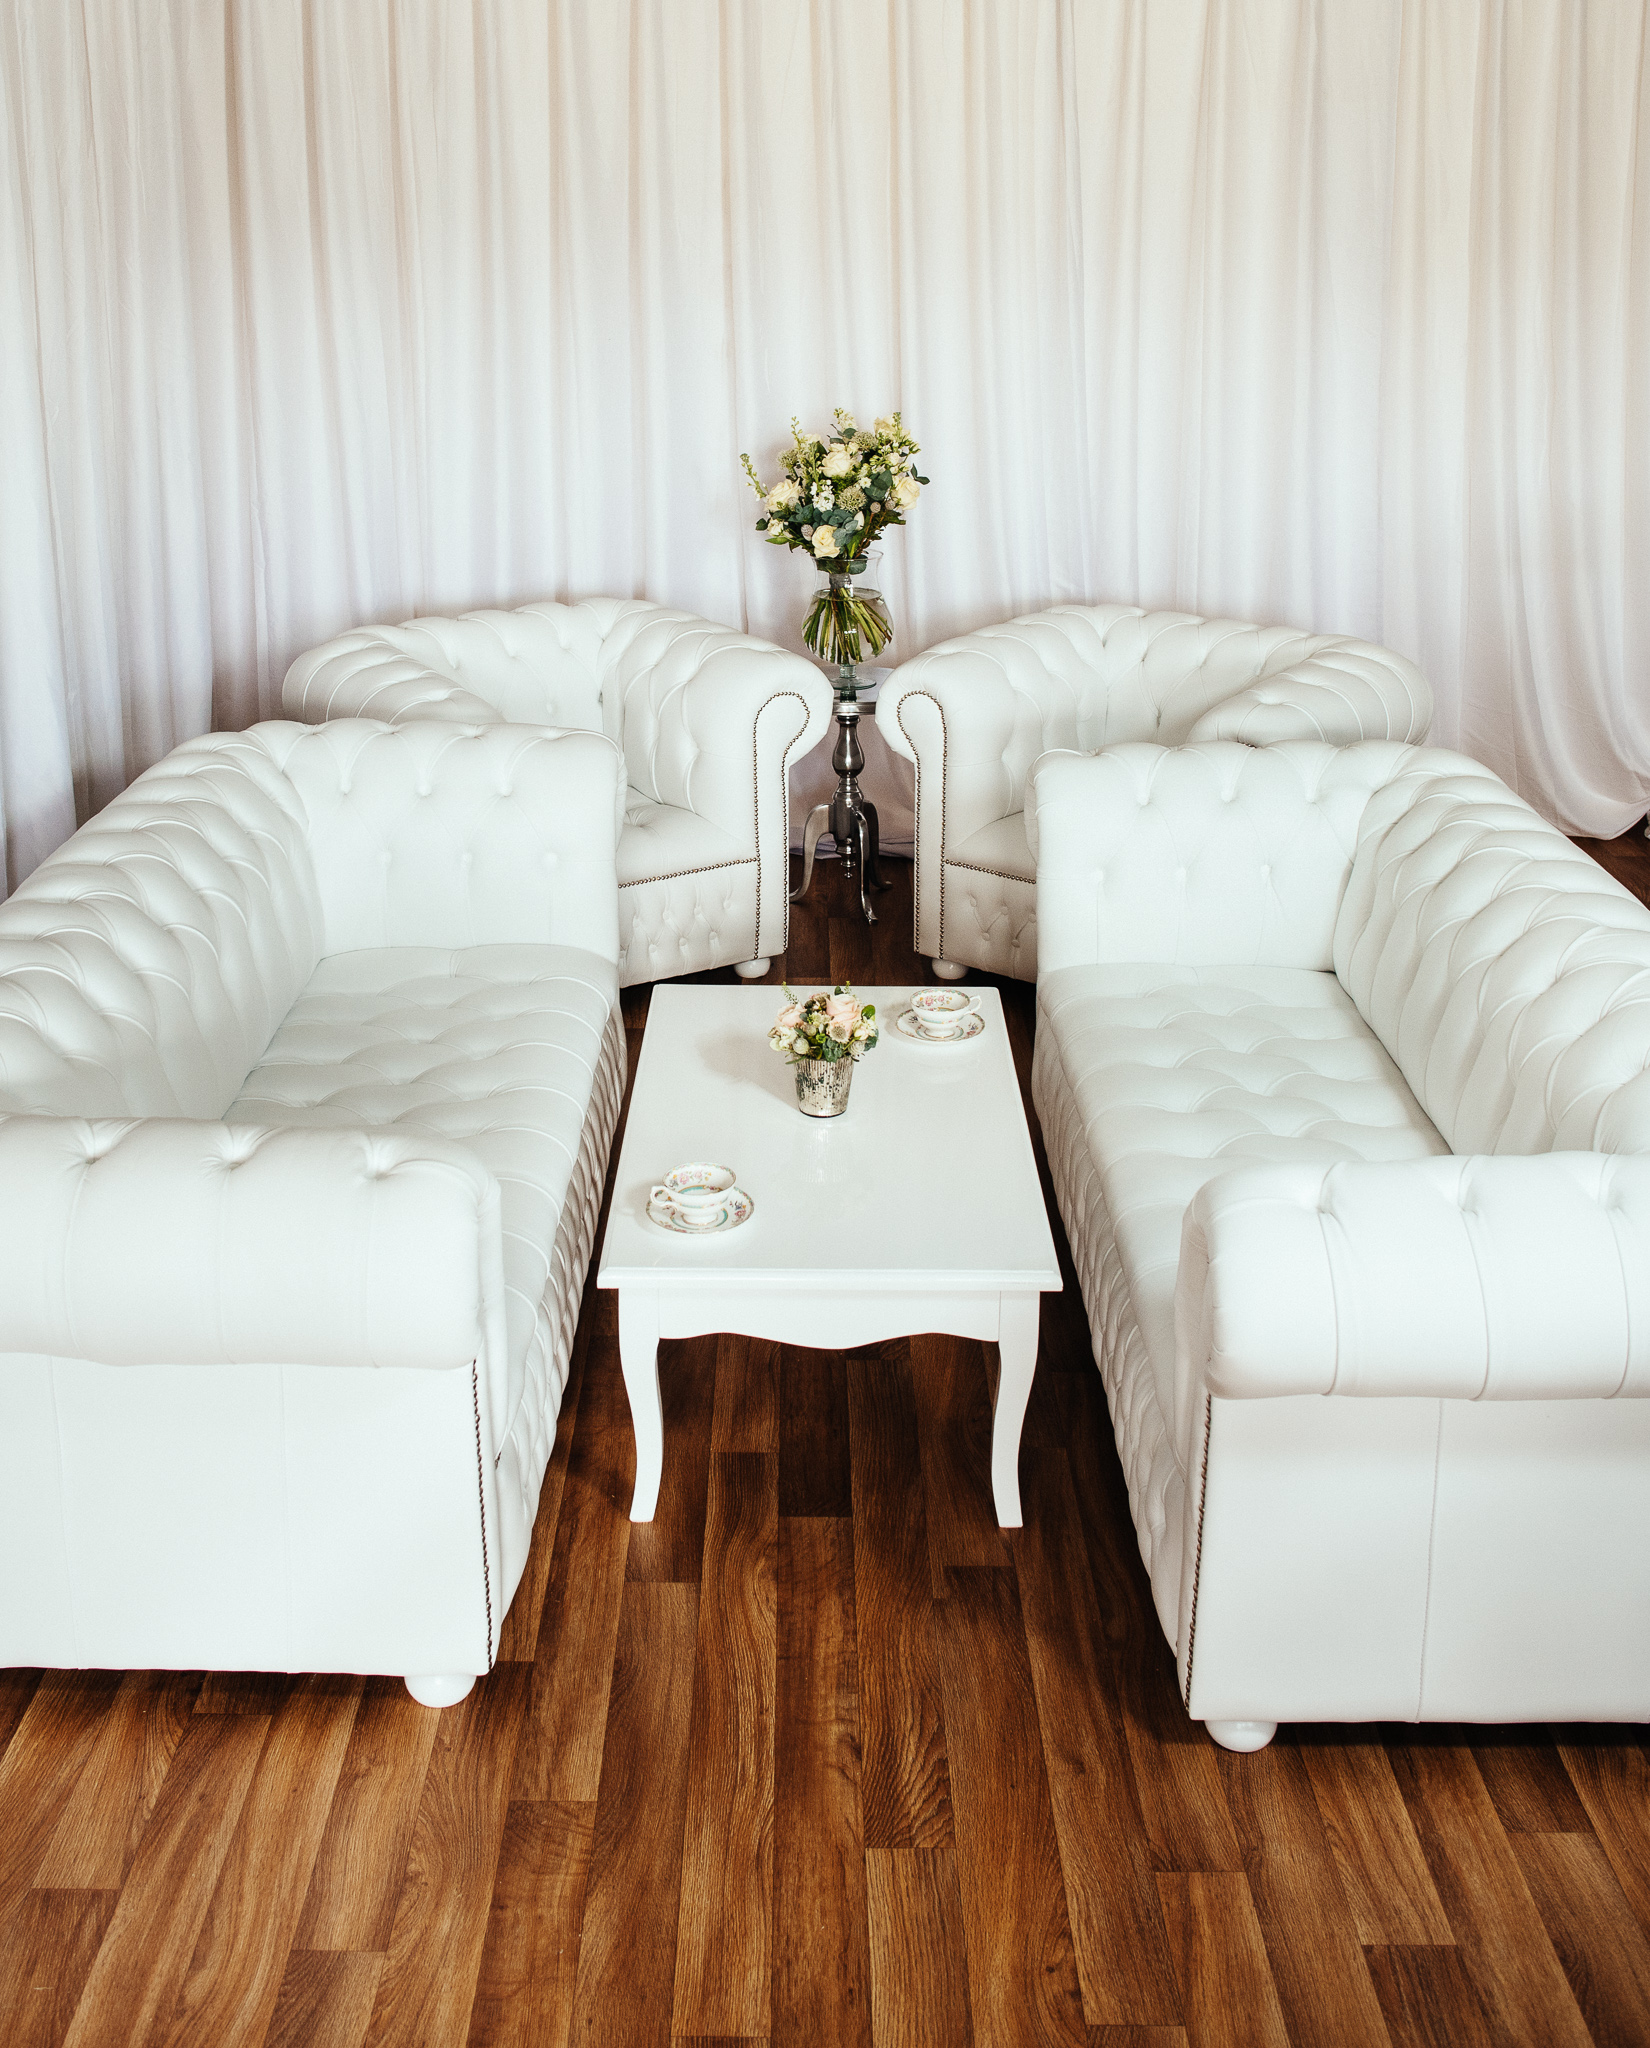 Luxury British Made White Leather Chesterfield Sofa Set